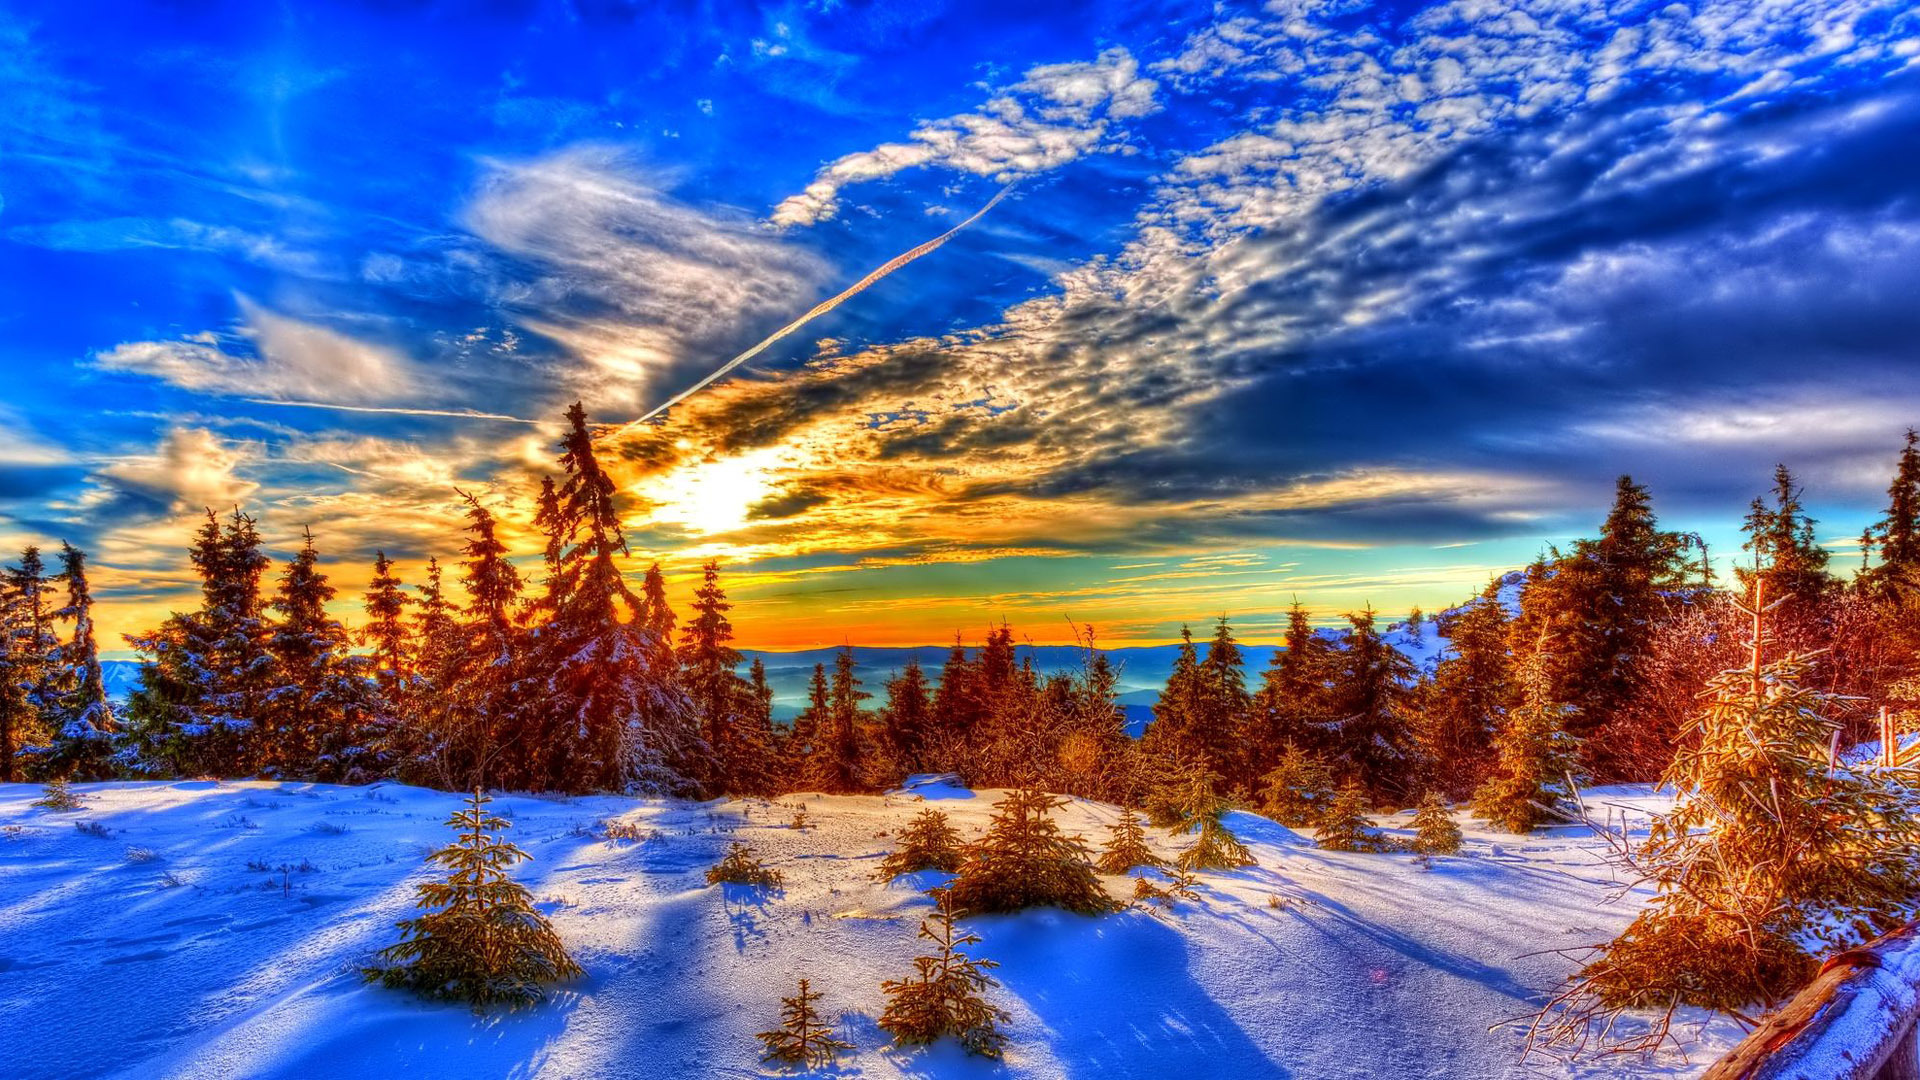 Download Winter Sunset HD Wallpapers Desktop Backgrounds in HD High 1920x1080